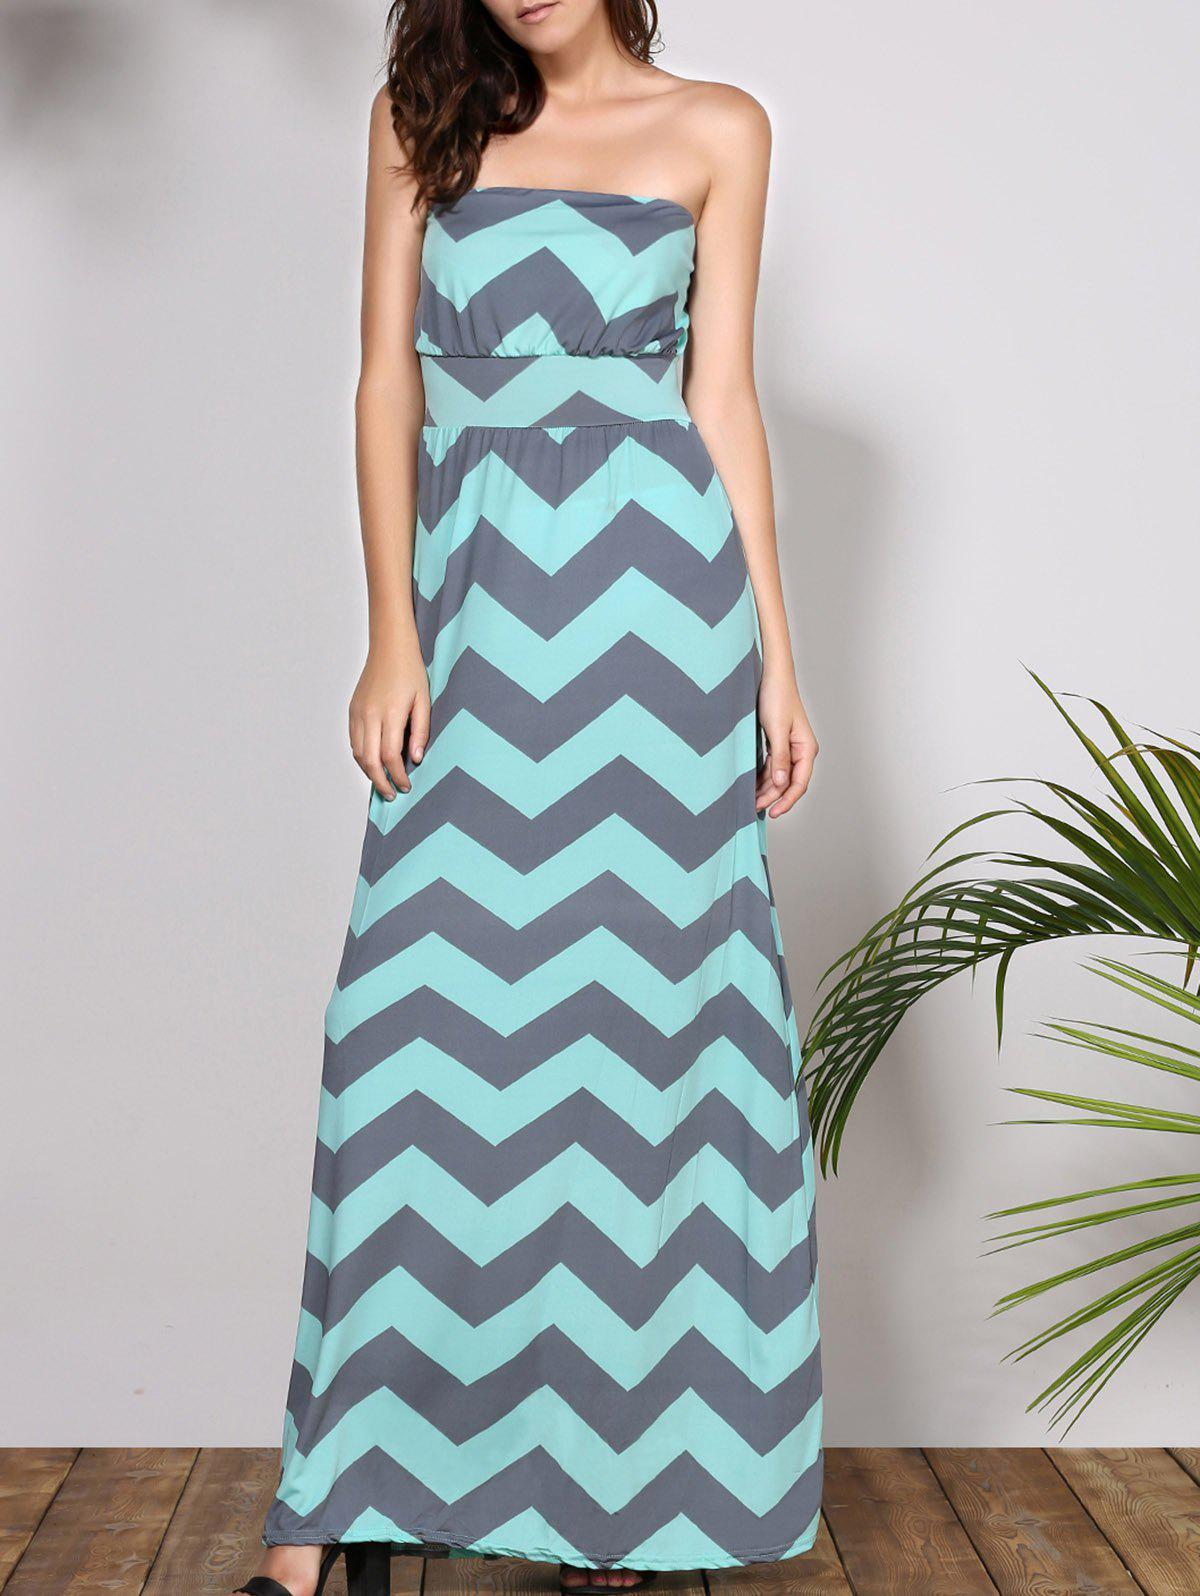 Bohemian Style Sleeveless Strapless Striped Women's Dress - LIGHT BLUE L